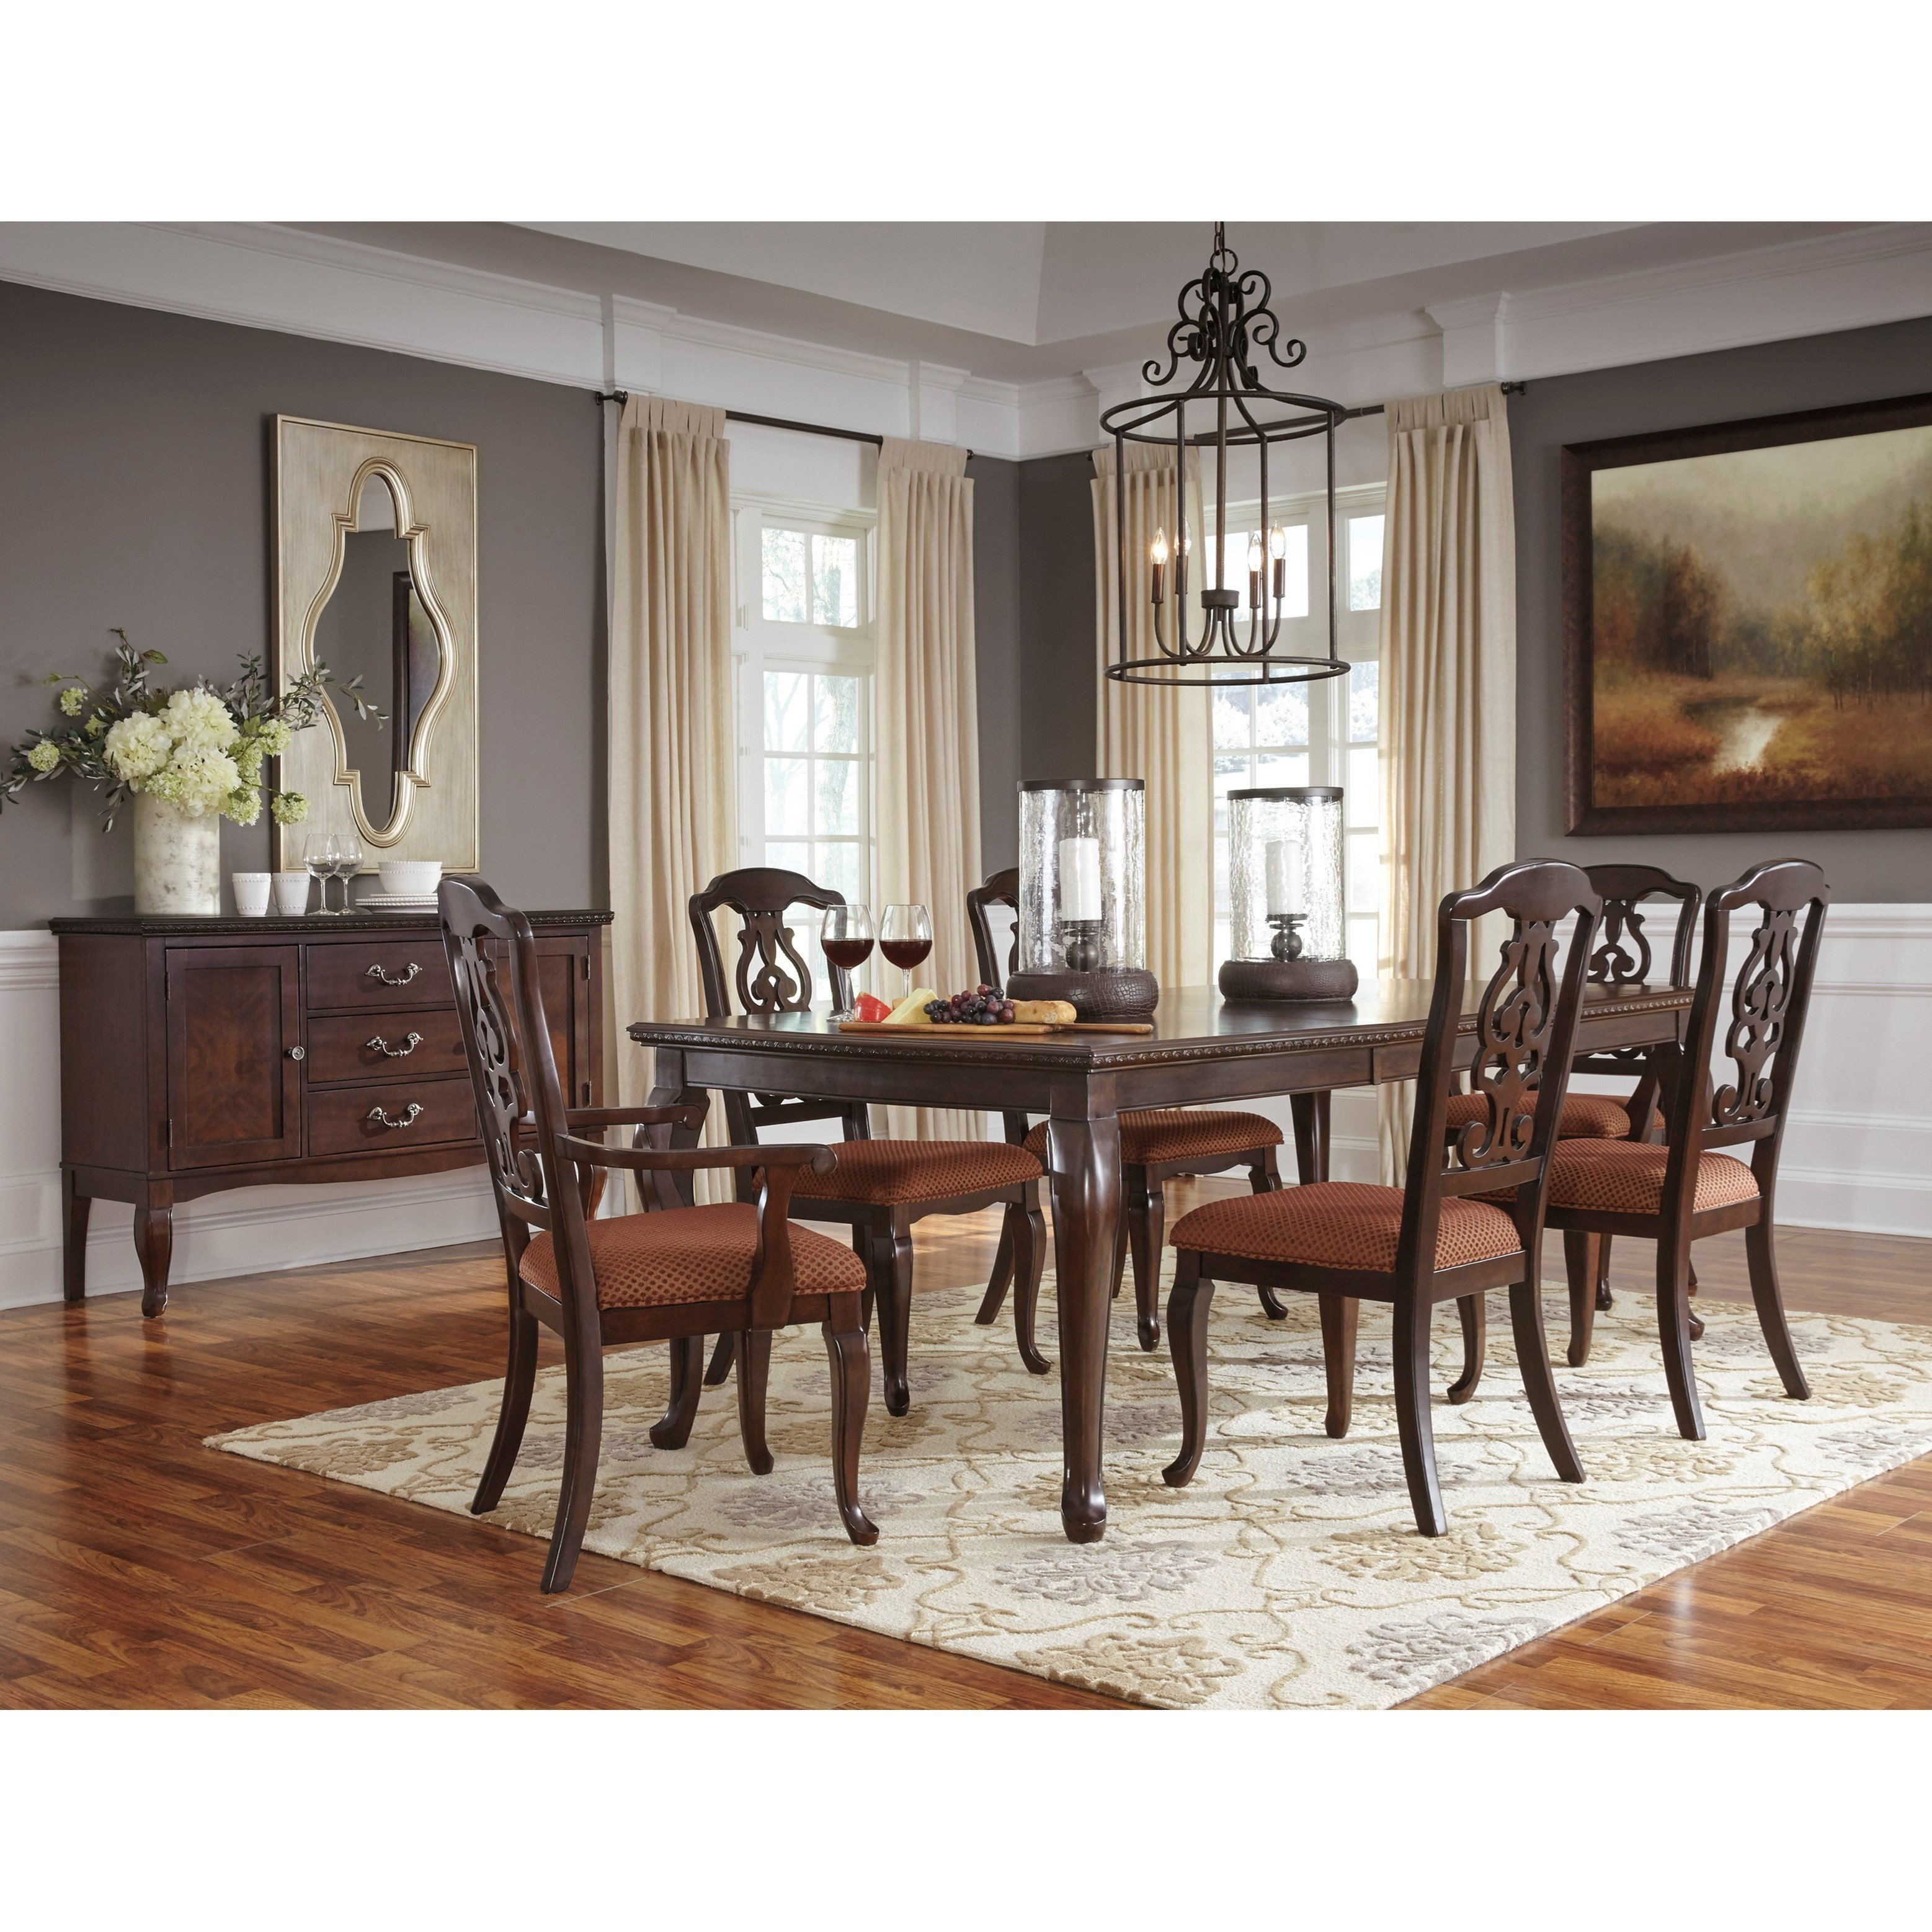 Signature Design By Ashley Gladdenville Formal Dining